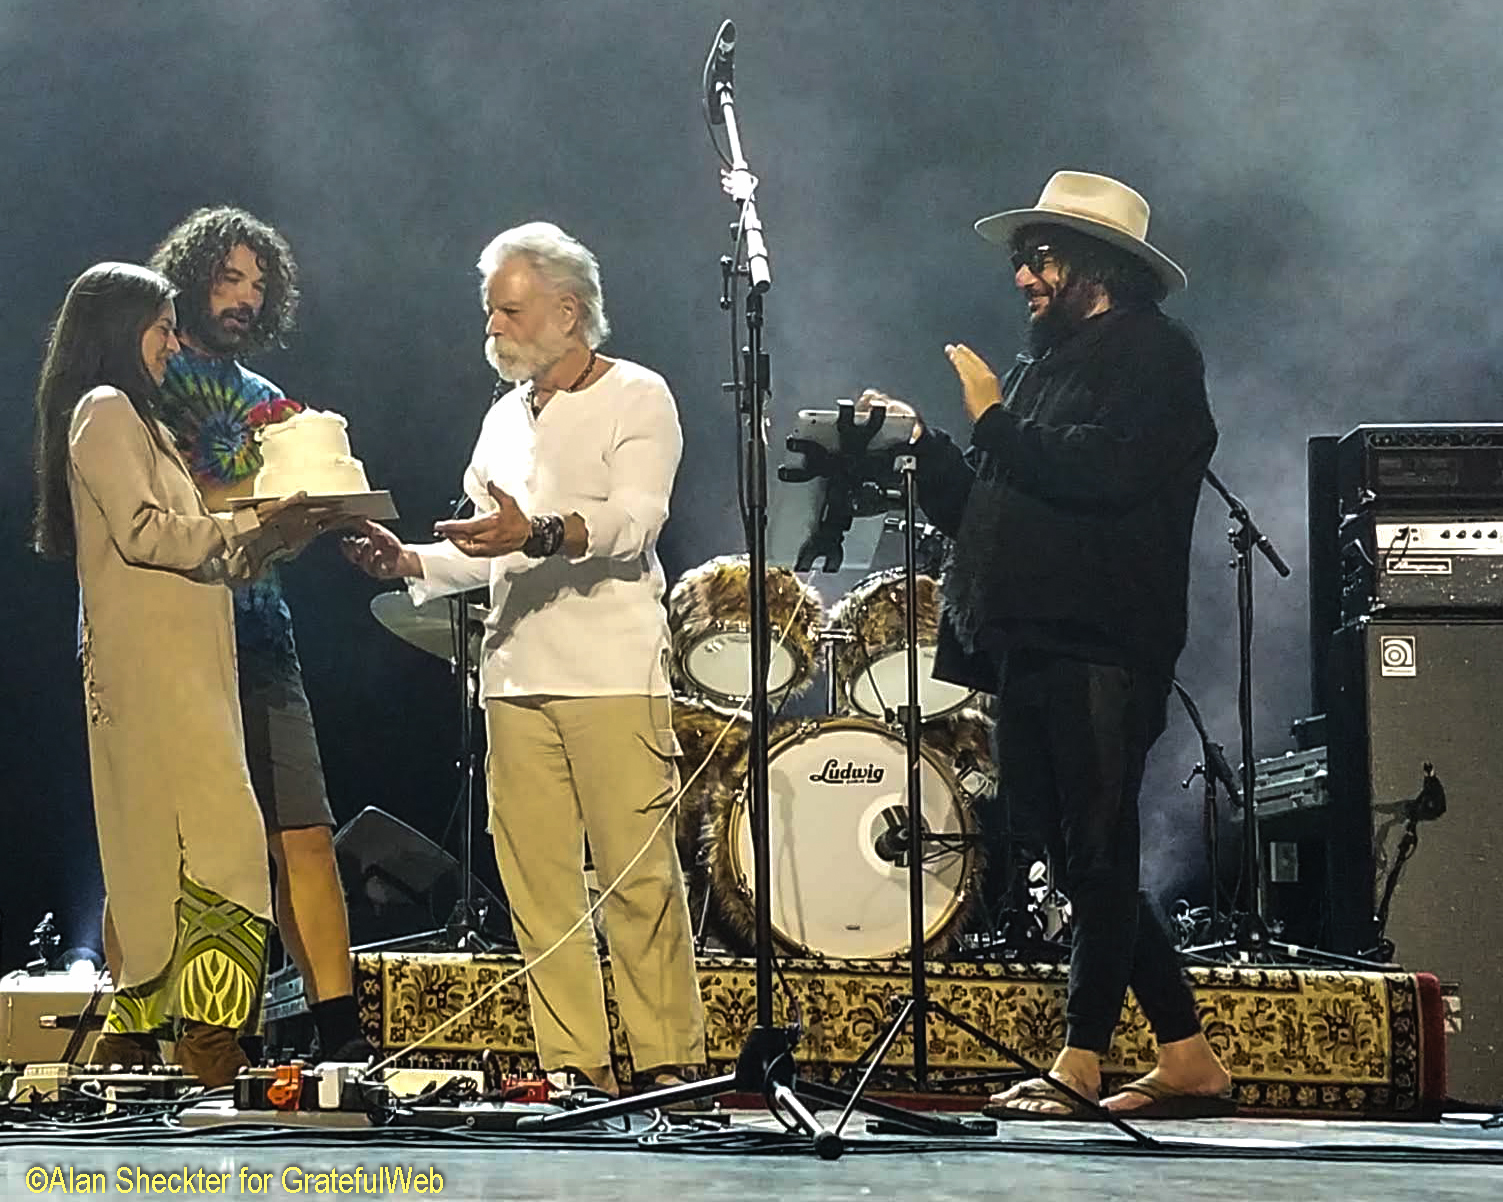 Natasha Weir does her part to share Bob Weir's 71st birthday with the audience